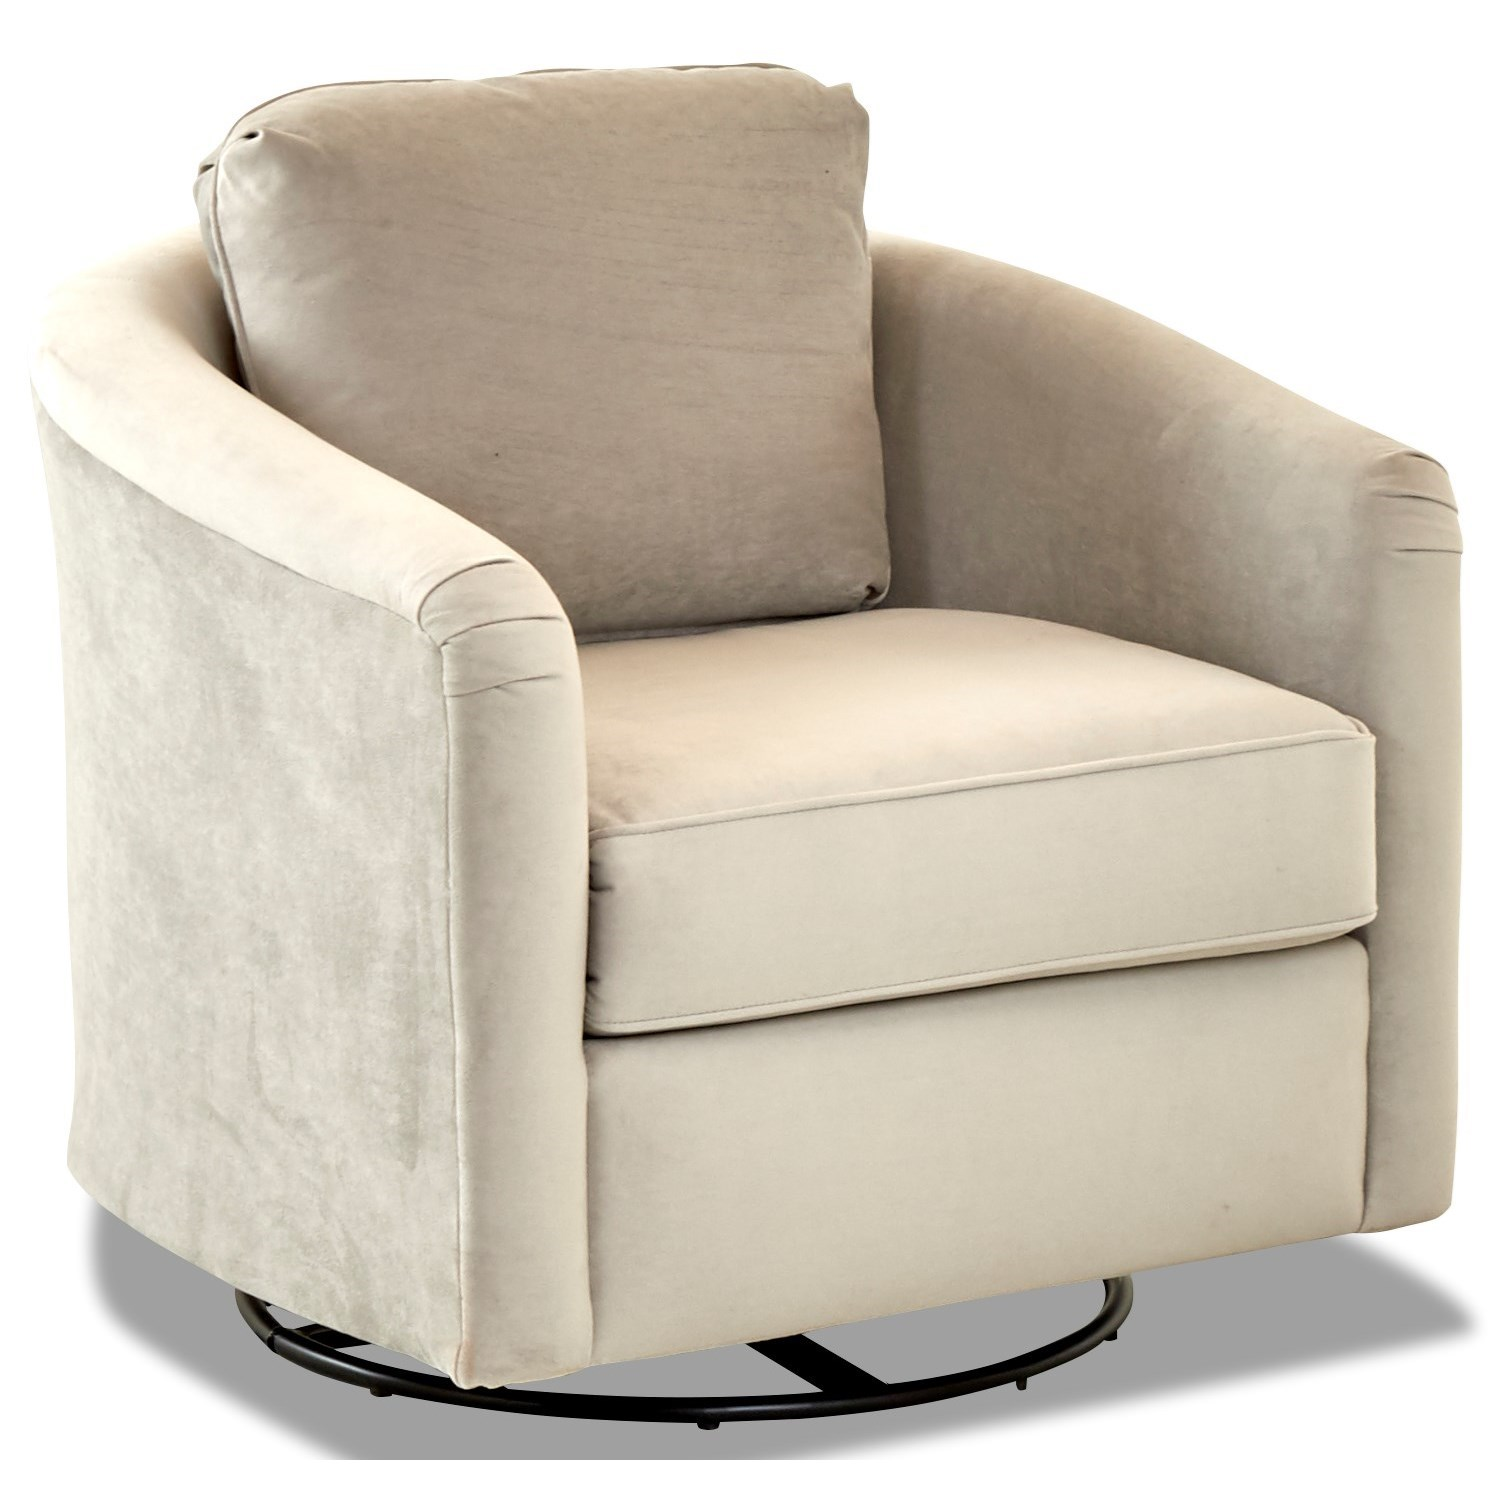 Chairs and Accents Upholstered Swivel Glider by Klaussner at Johnny Janosik